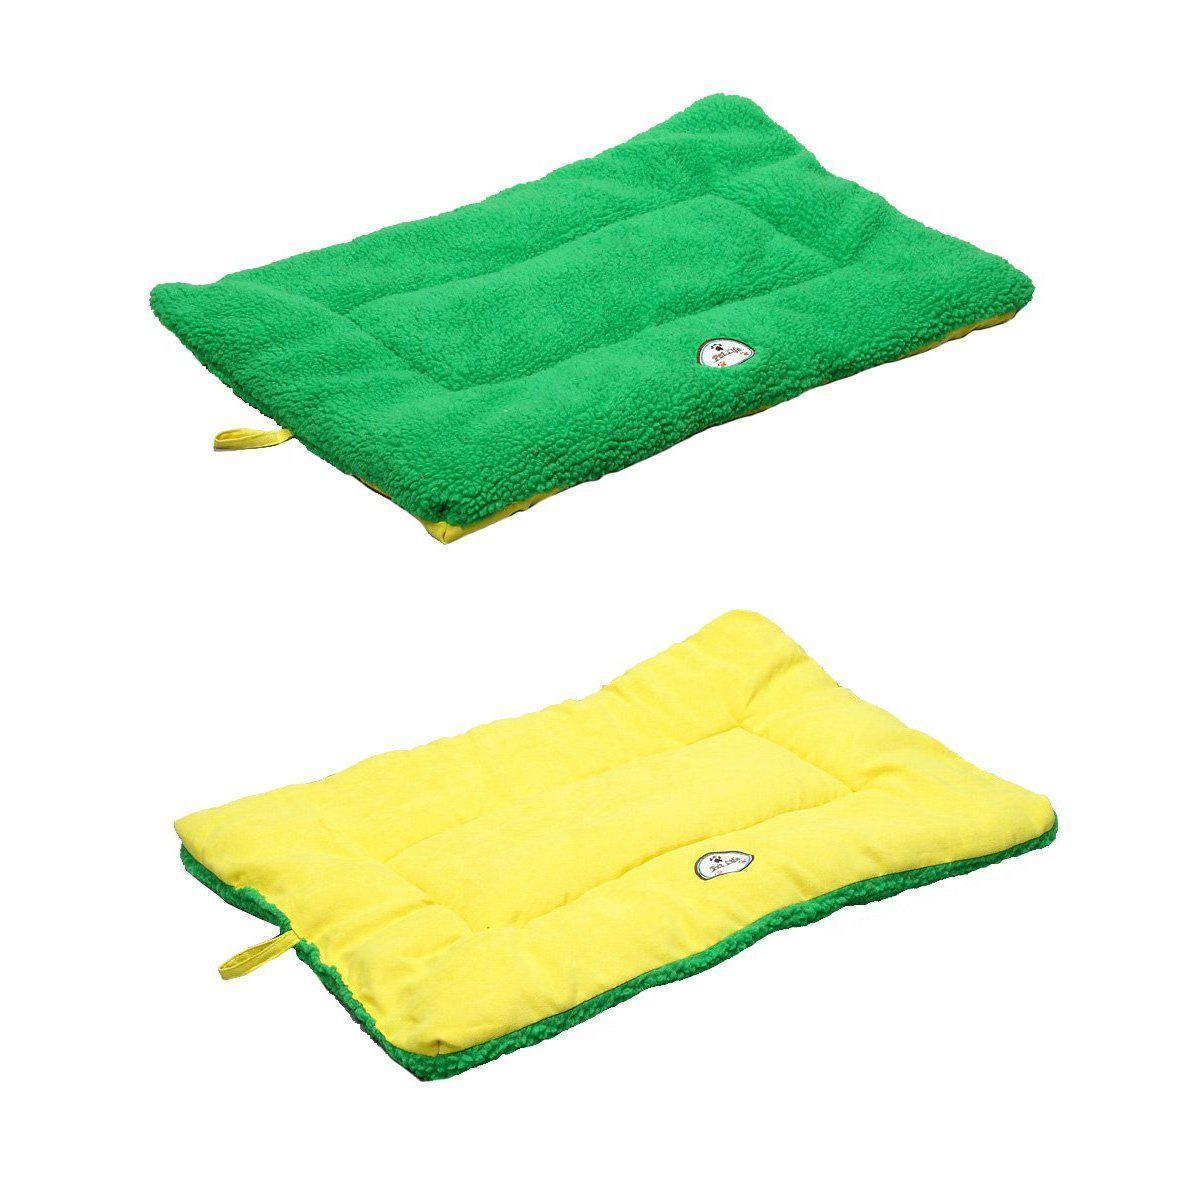 Eco-Paw Reversible Eco-Friendly Dog Bed- Green And Yellow-Pet Life-DirtyFurClothing